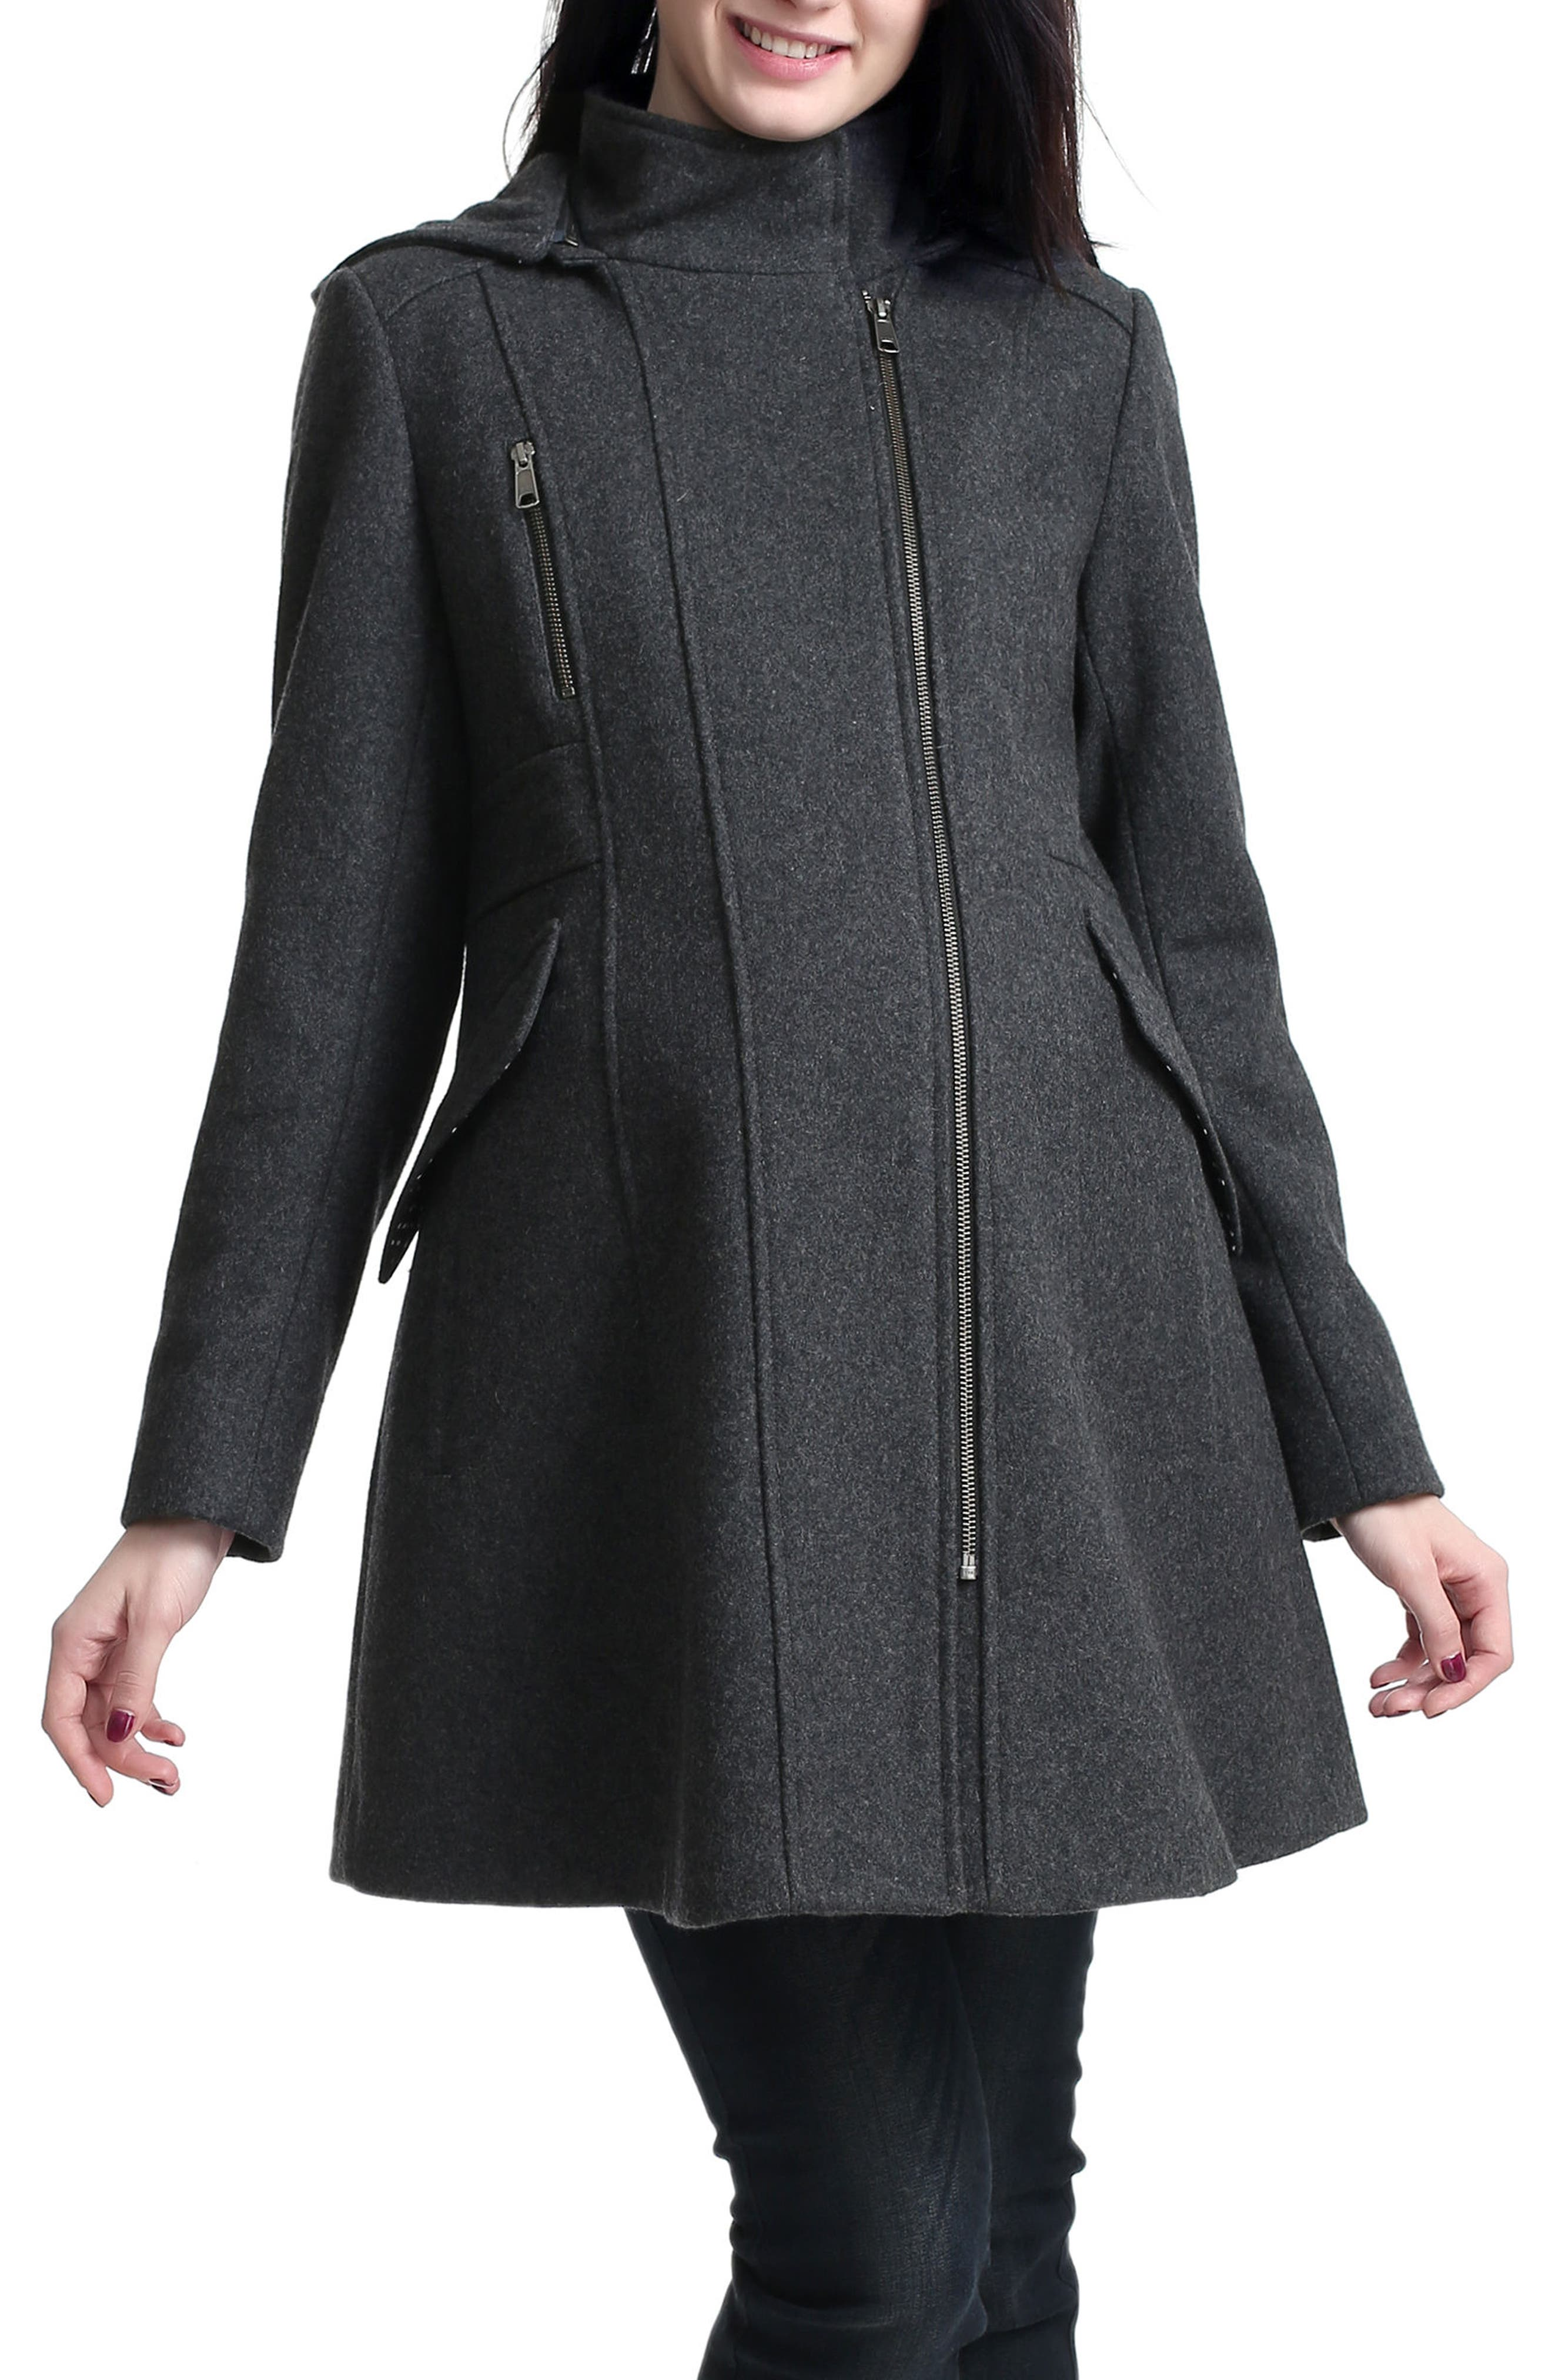 Cordella Wool Blend Hooded Maternity Coat,                         Main,                         color, DARK HEATHER GRAY